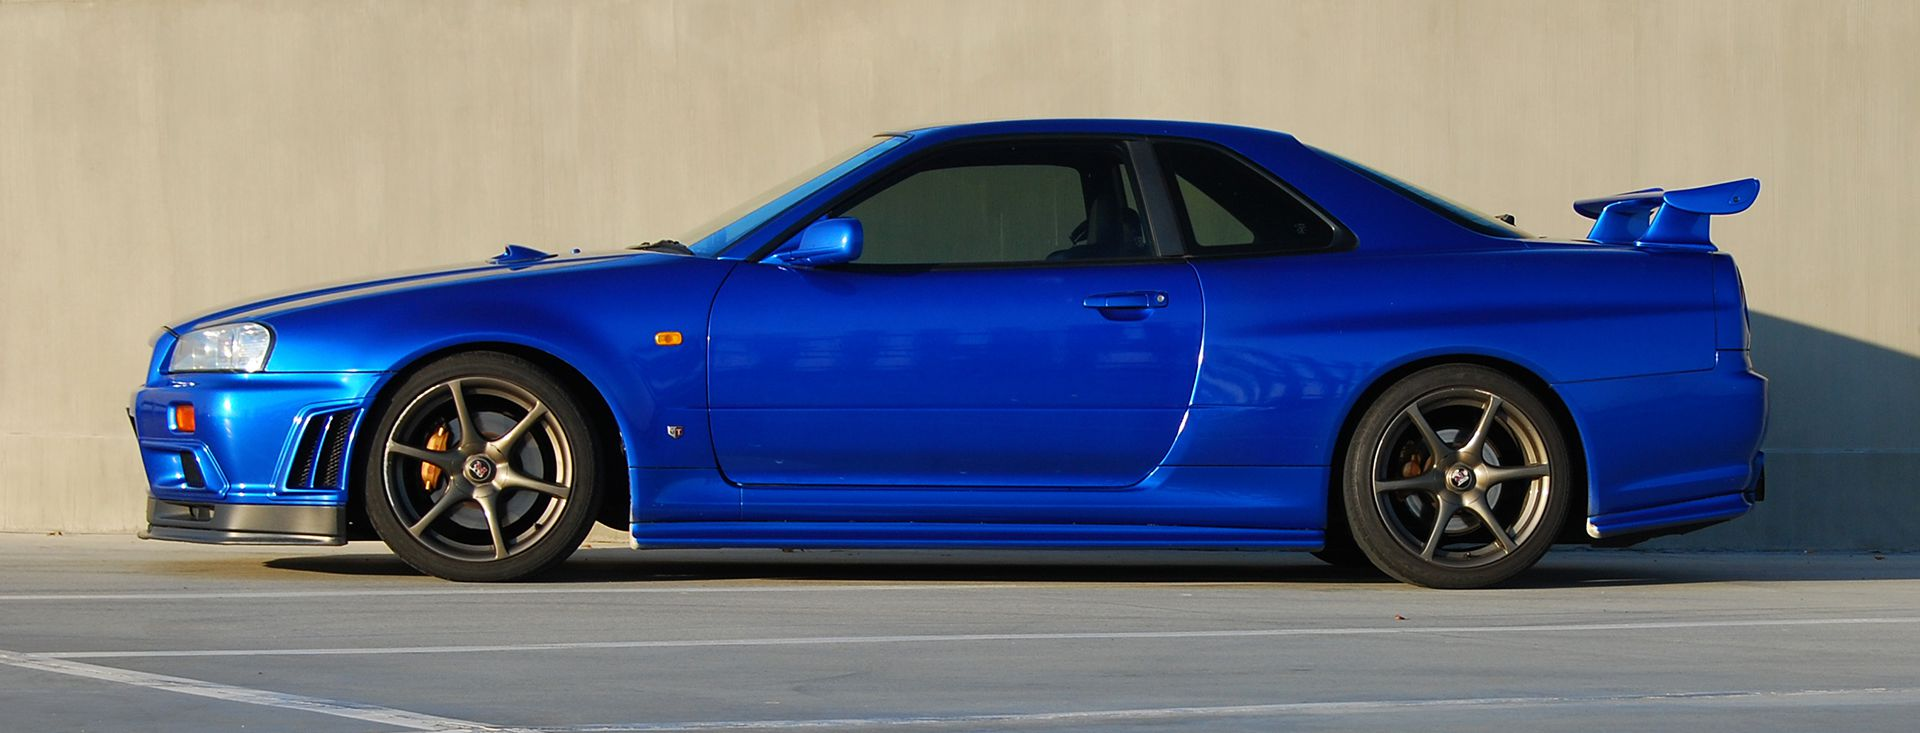 Lhd Conversion Of Nissan Skyline R34 Gtr Or Gtt Kageki